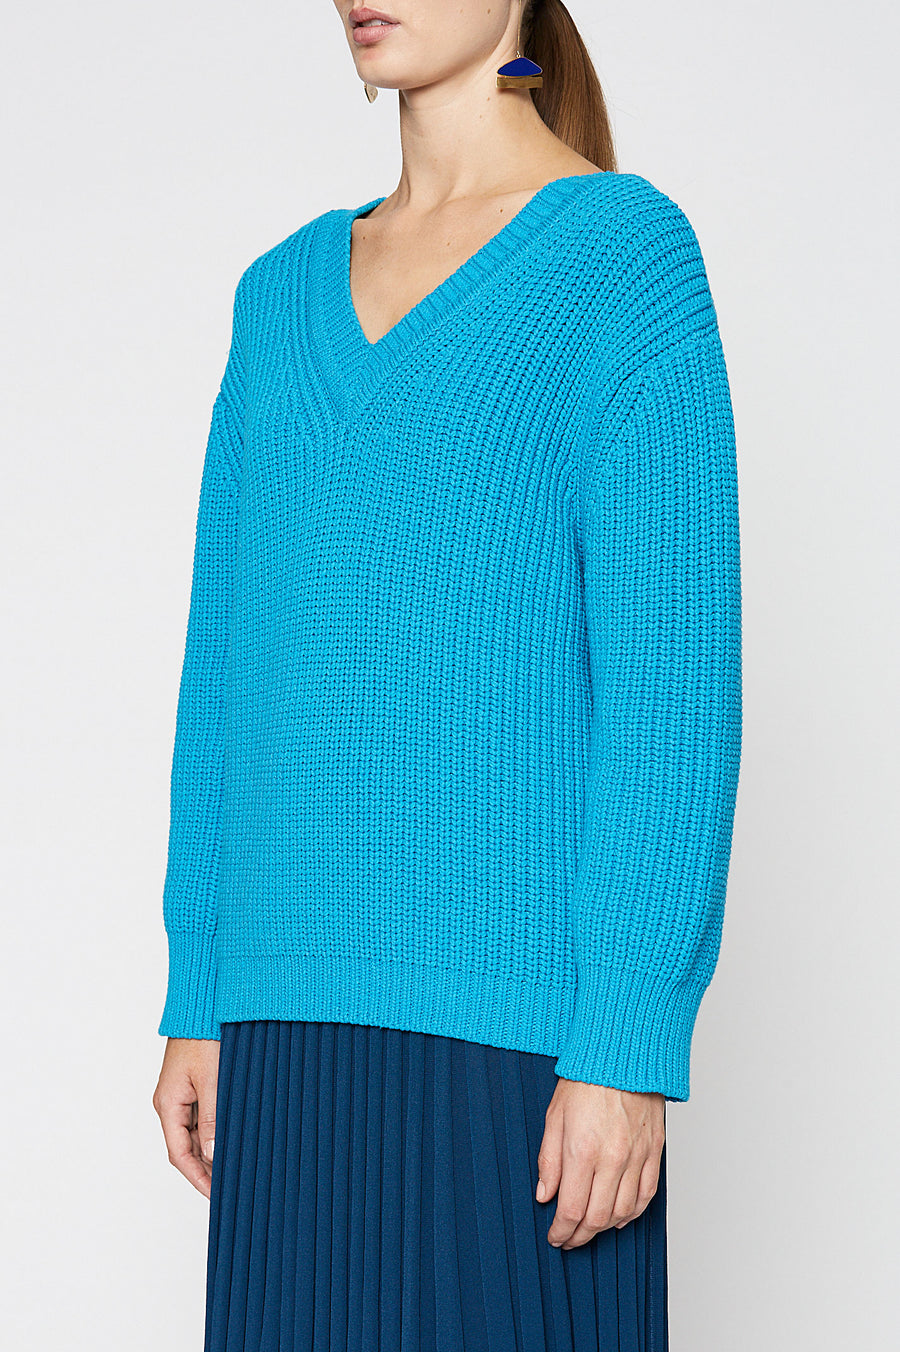 KISS DOUBLE V NECK SWEATER 3, long sleeve, Turquoise